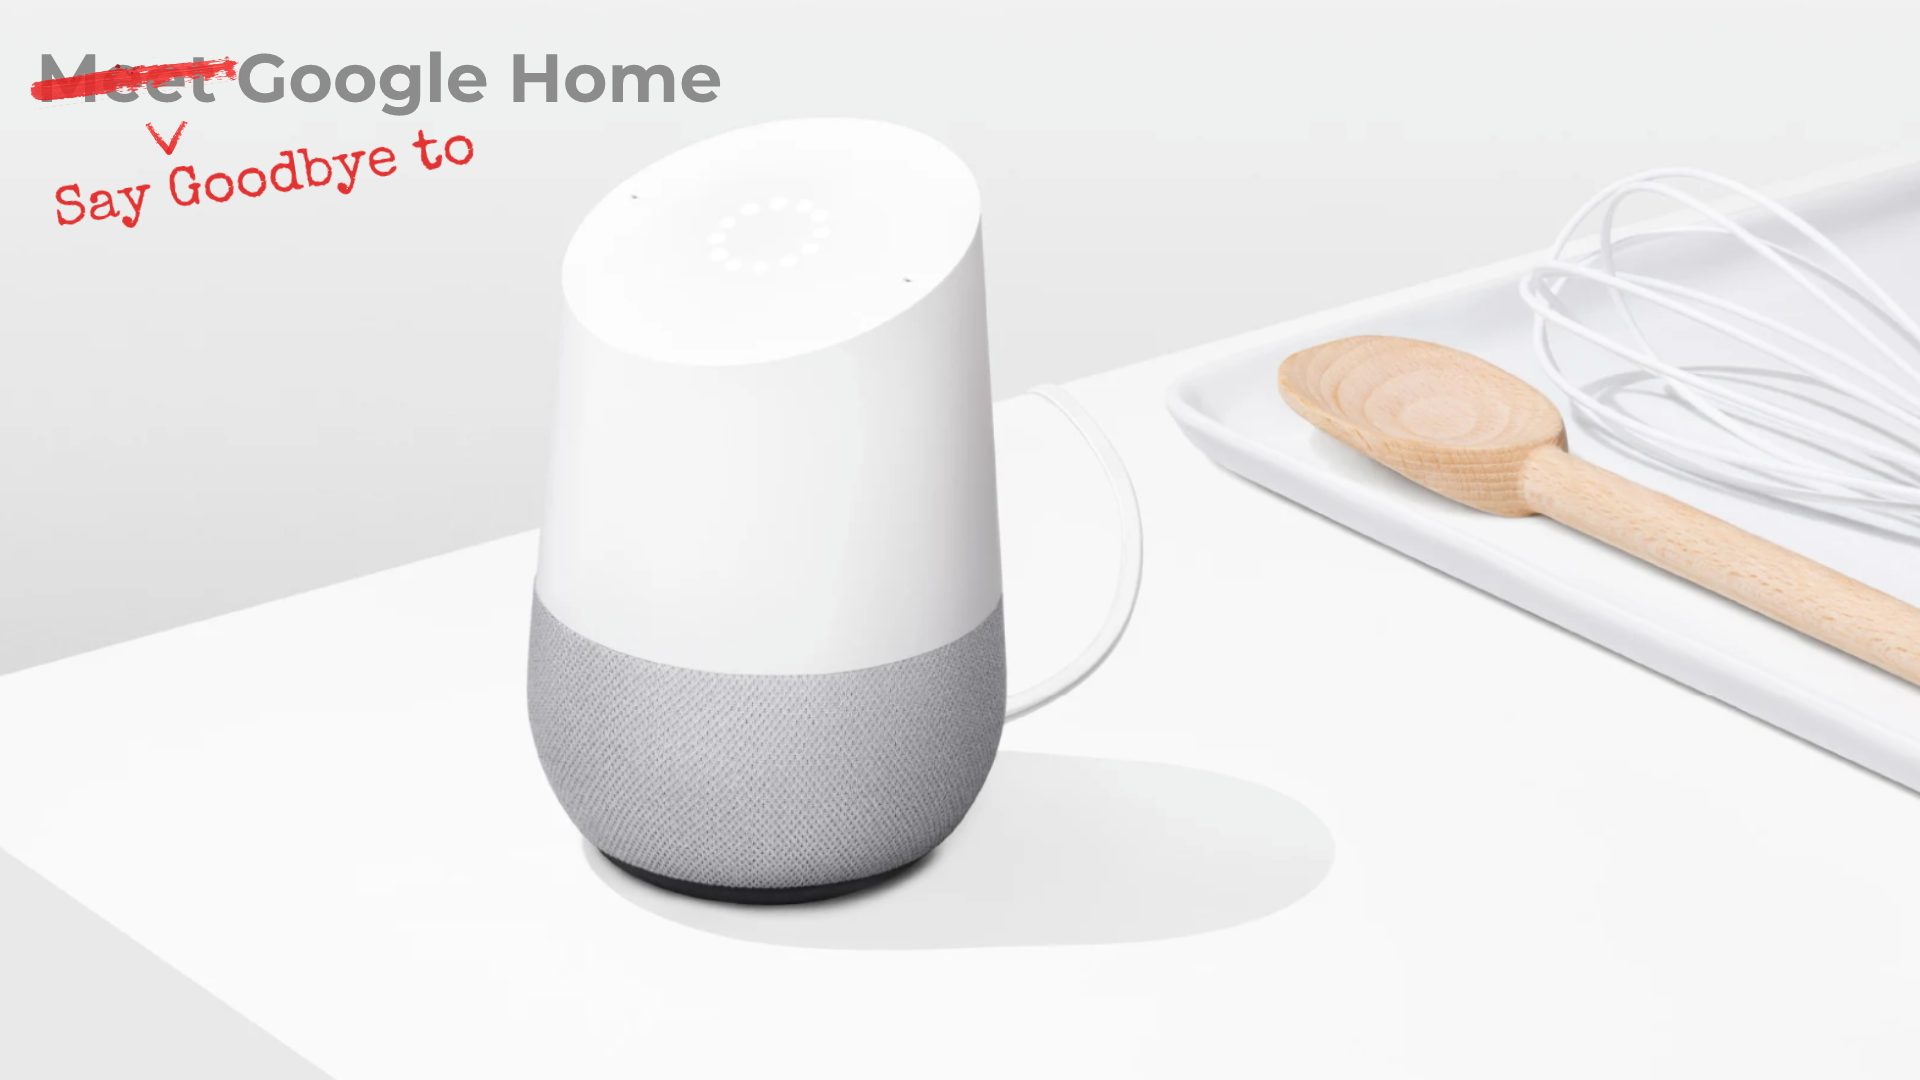 Saying goodbye to the original Google Home, and hello to a hopeful successor